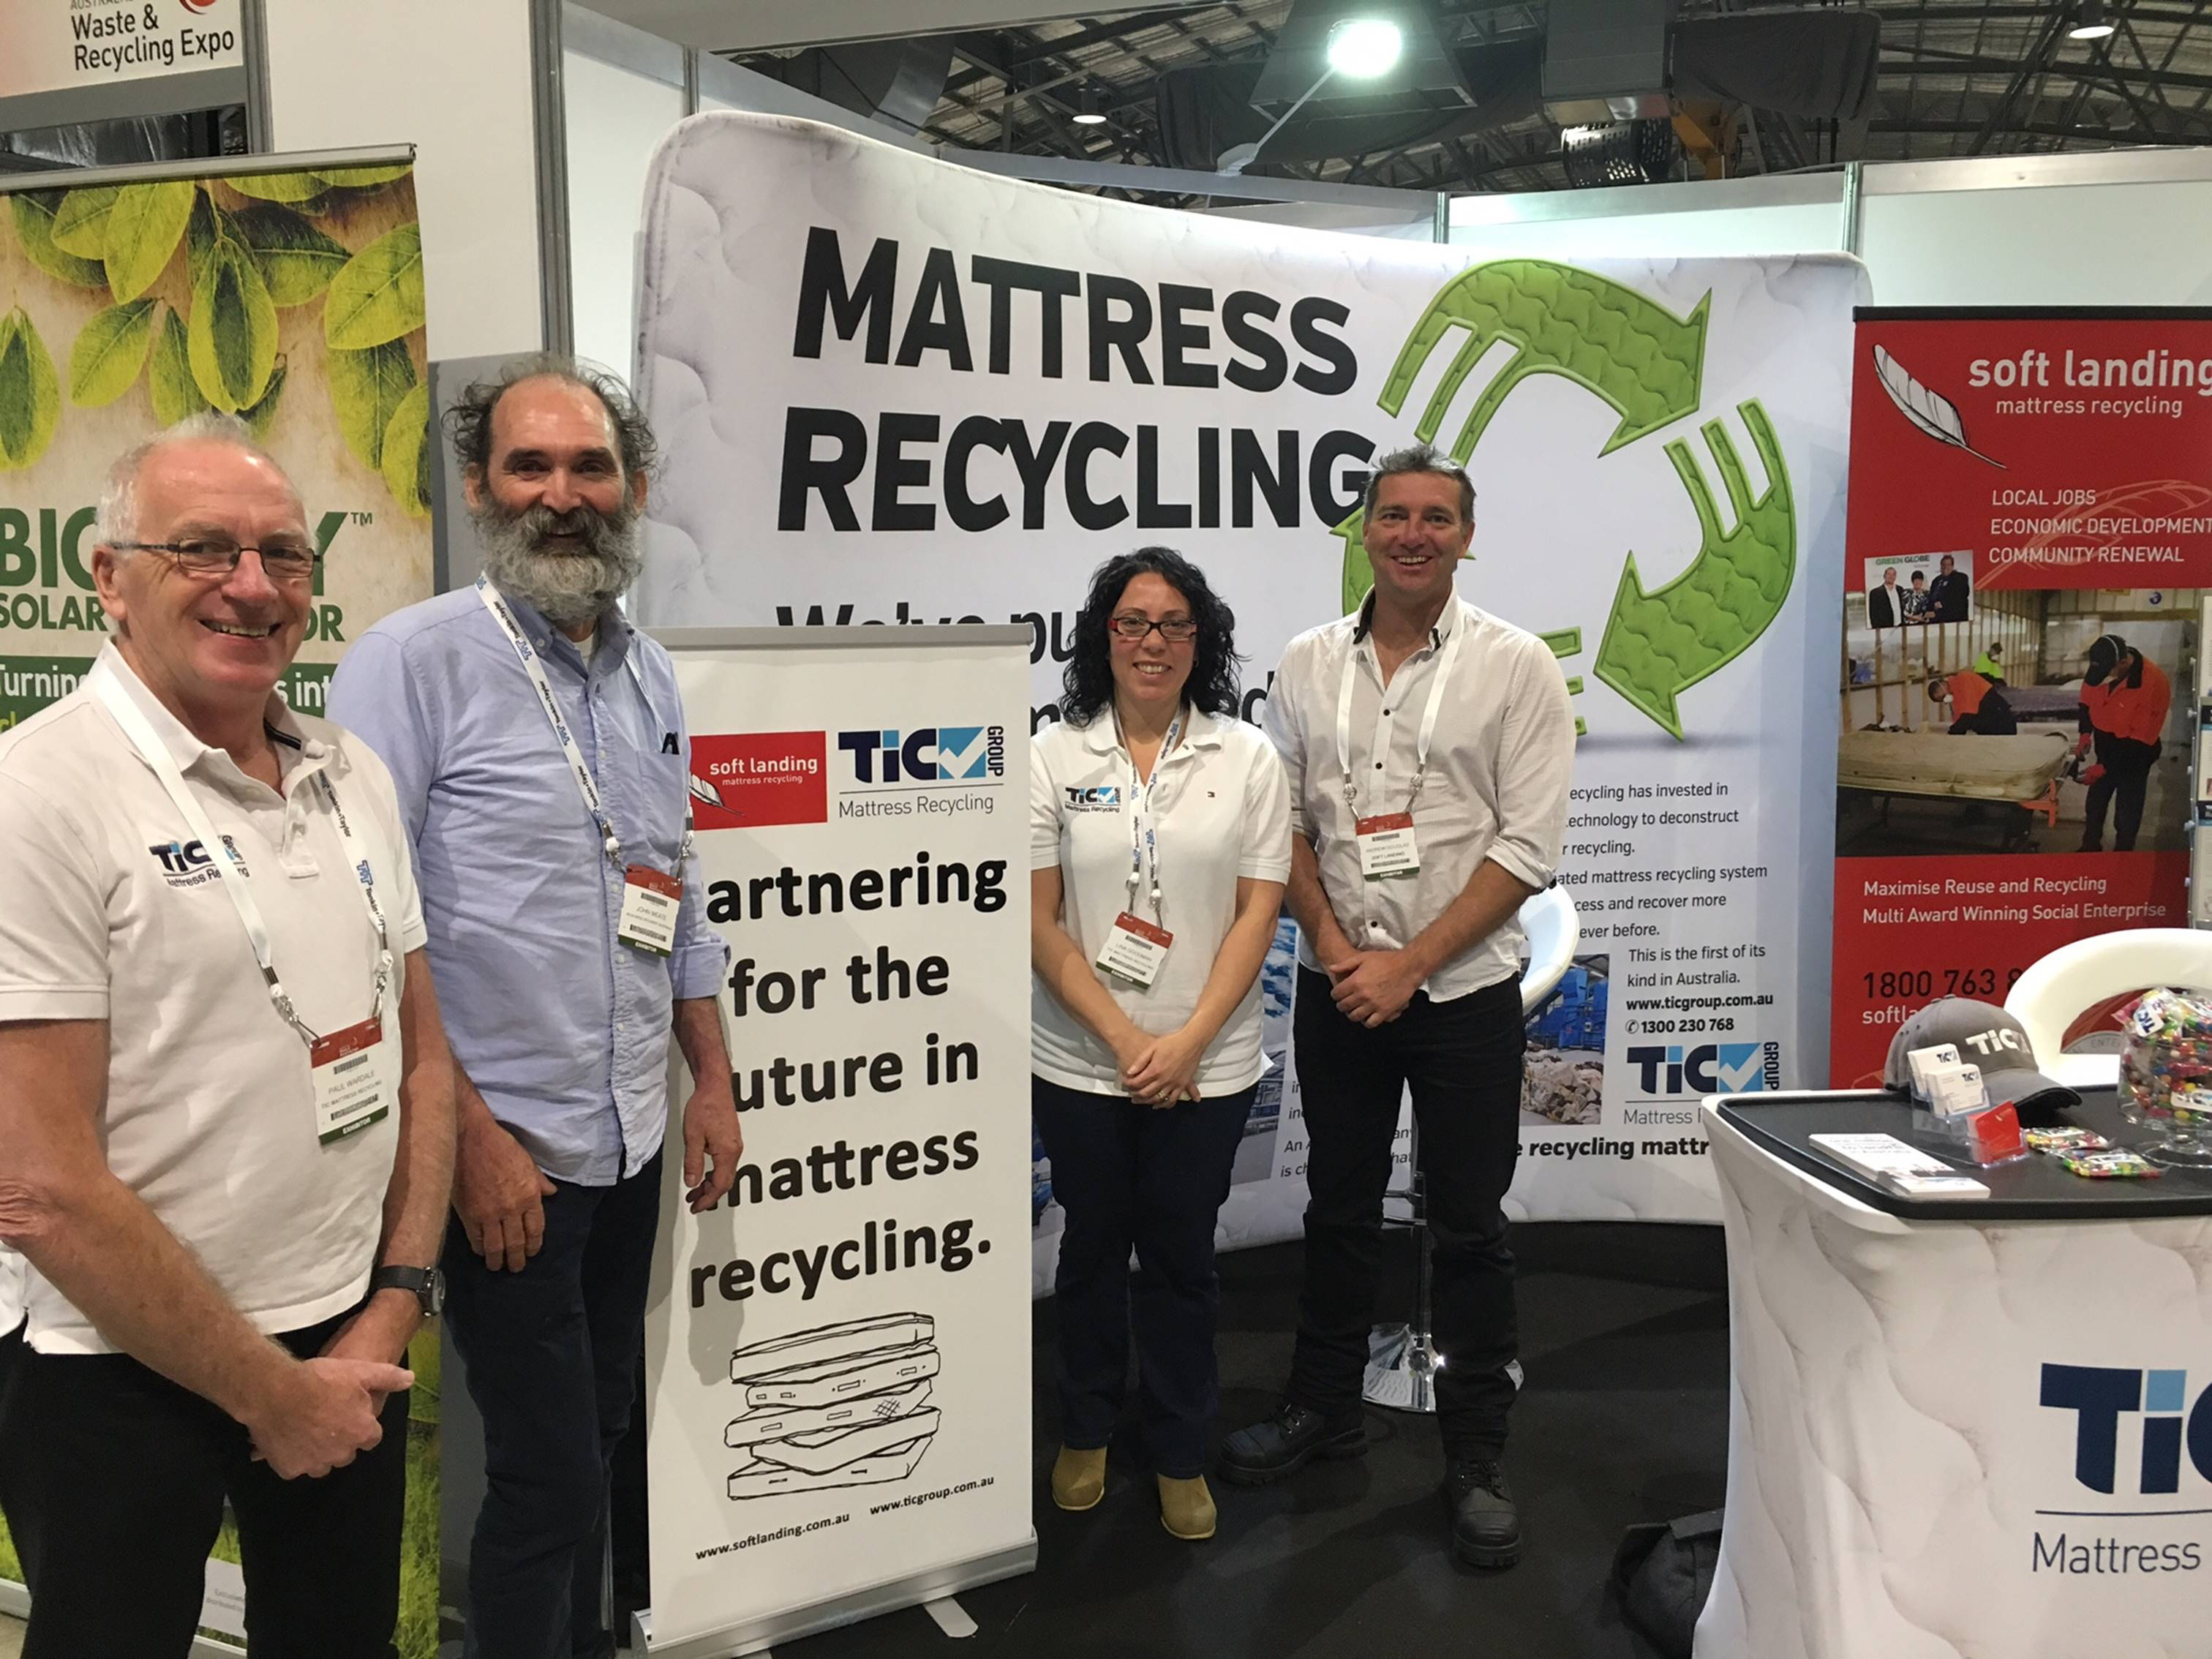 TIC and Soft Landing collaborate on mattress recycling